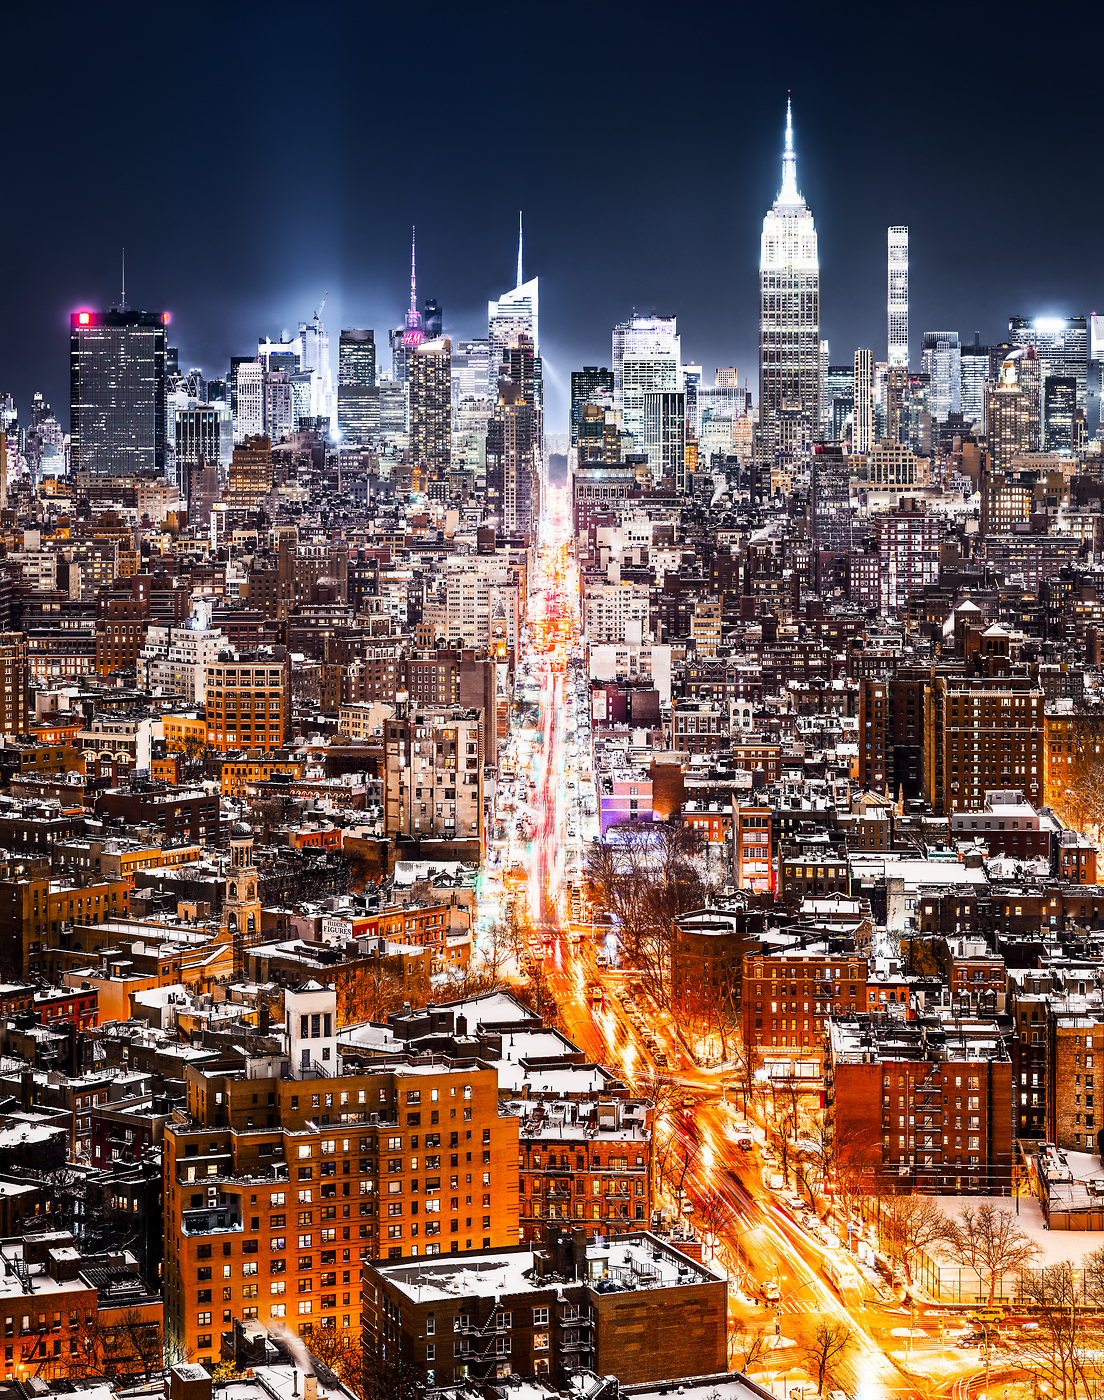 Fine Art Prints And Photographs Of New York City At Night